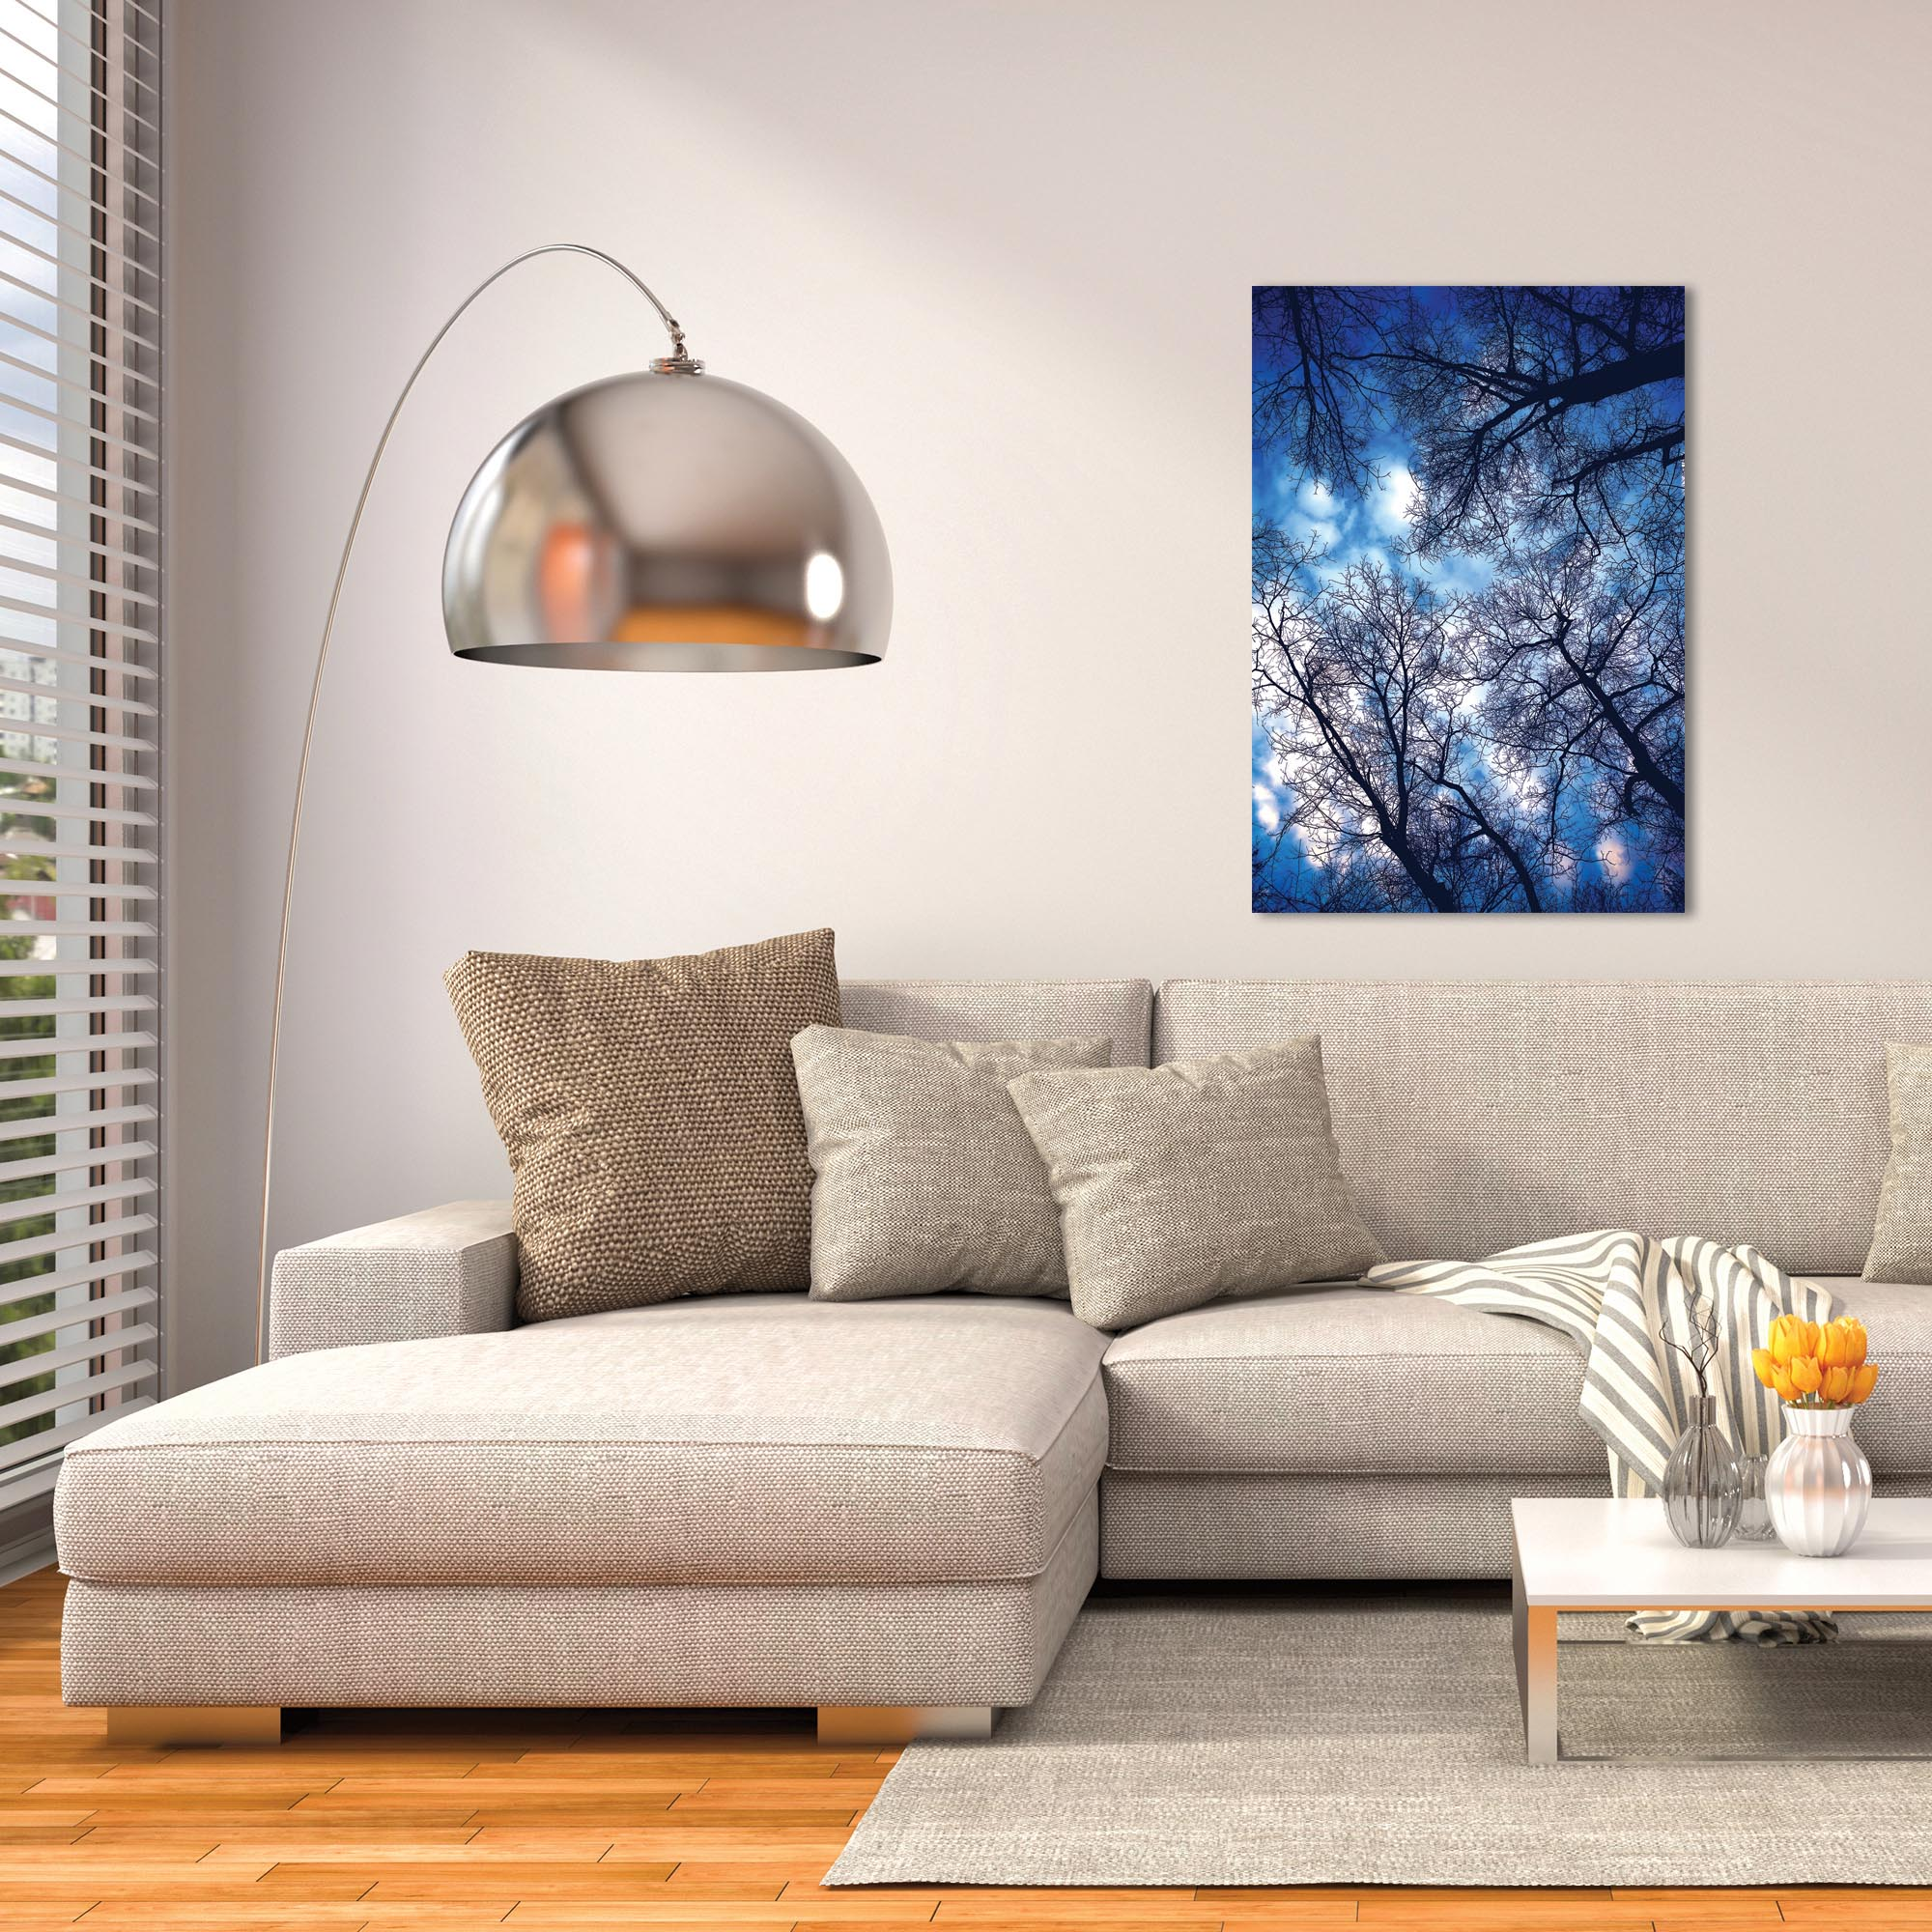 Landscape Photography 'Sky Vains' - Winter Scene Art on Metal or Plexiglass - Lifestyle View